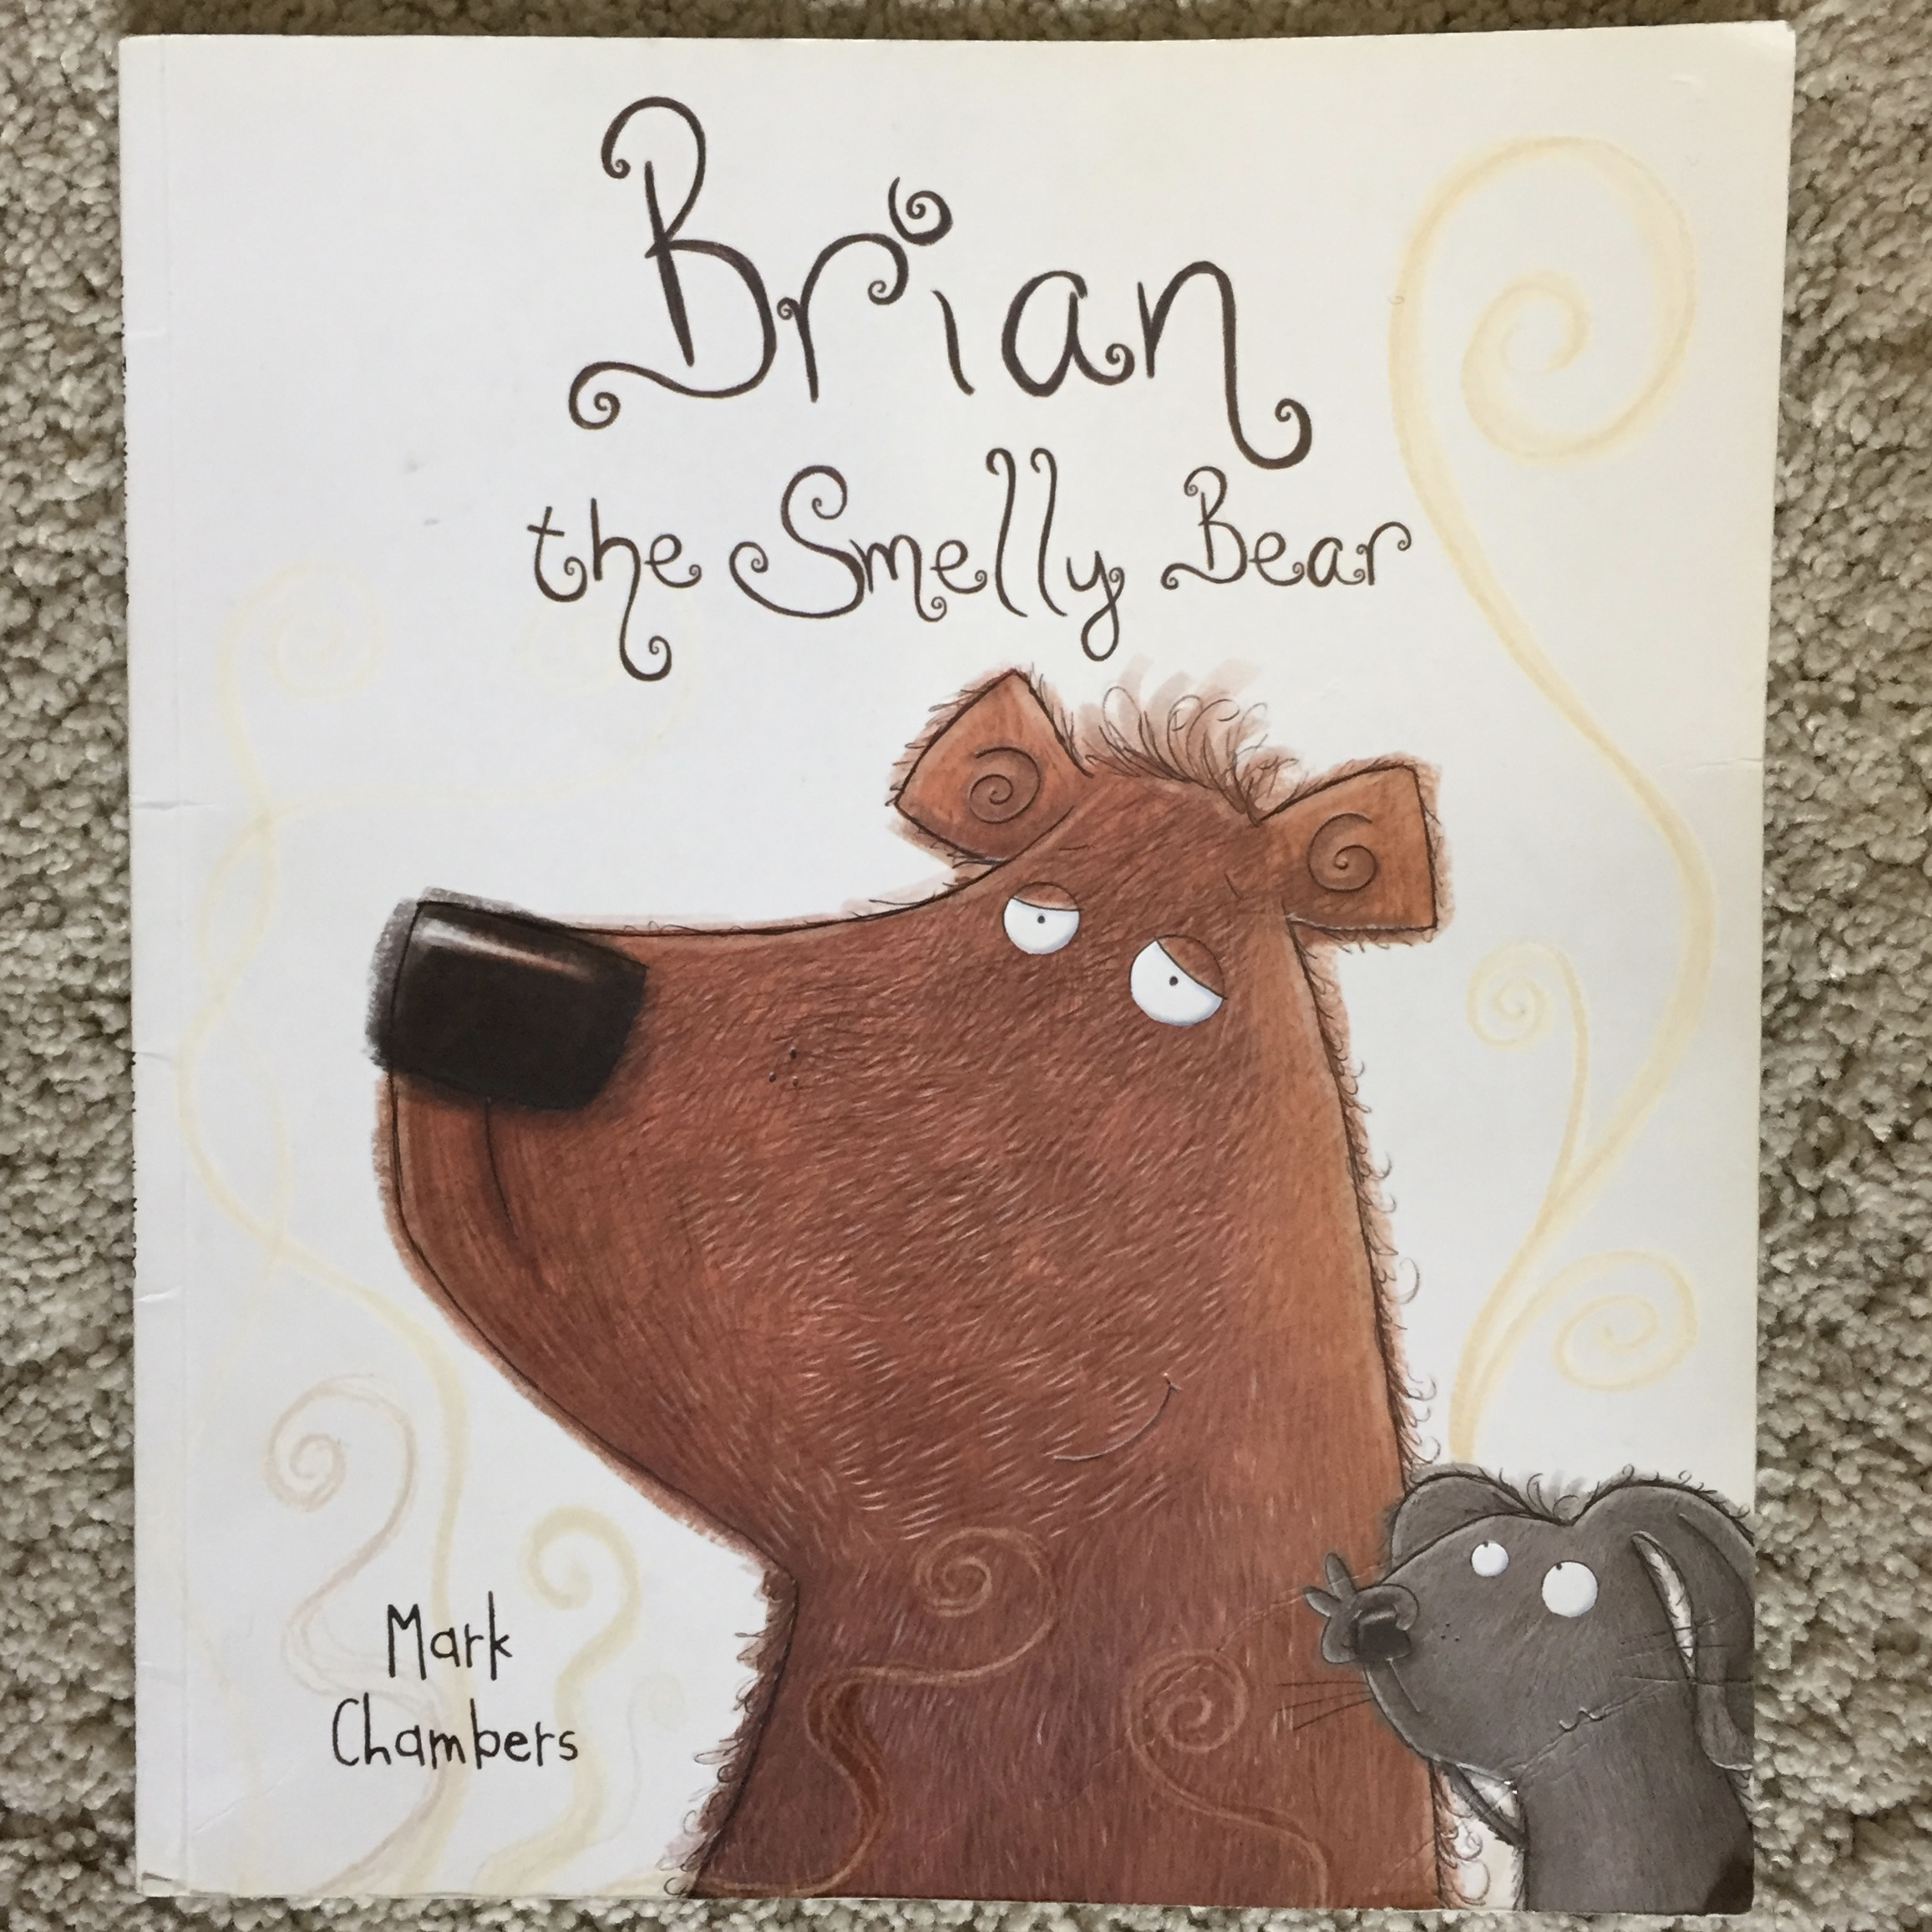 Review - Brian The Smelly Bear